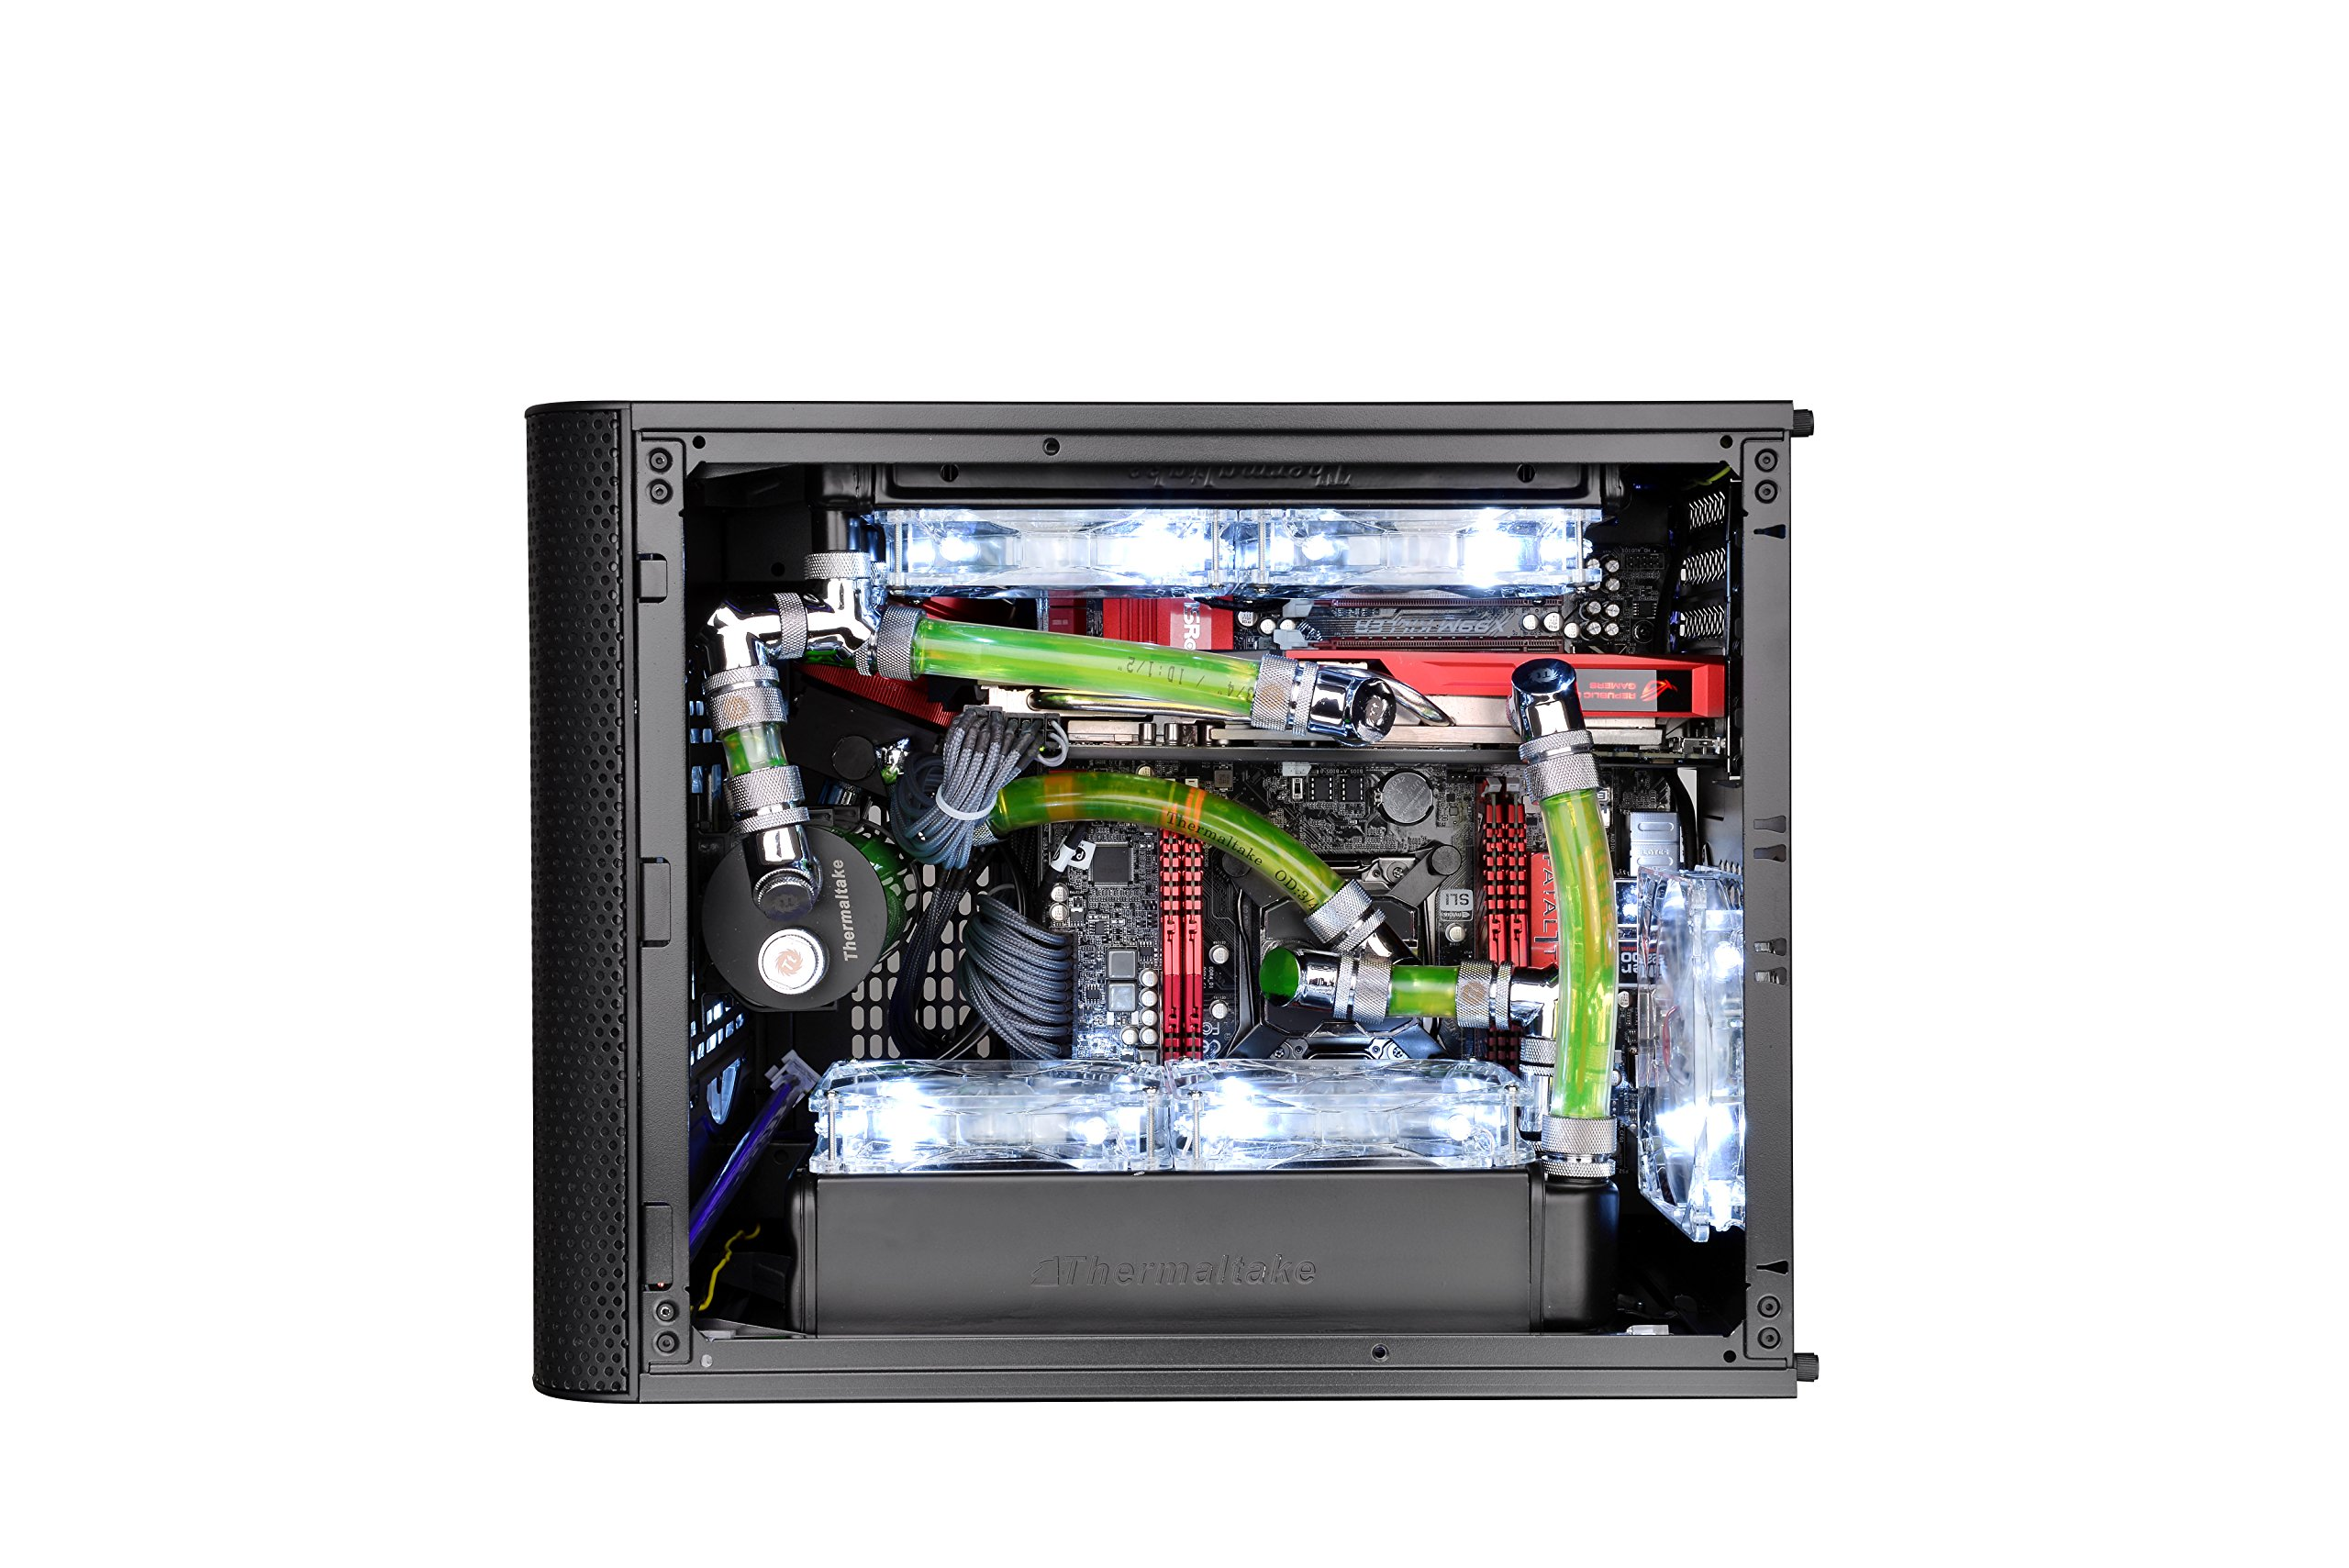 Thermaltake Core V21 SPCC Micro ATX, Mini ITX Cube Gaming Computer Case Chassis, Small Form Factor Builds, 200mm Front Fan Pre-installed, CA-1D5-00S1WN-00 by Thermaltake (Image #14)